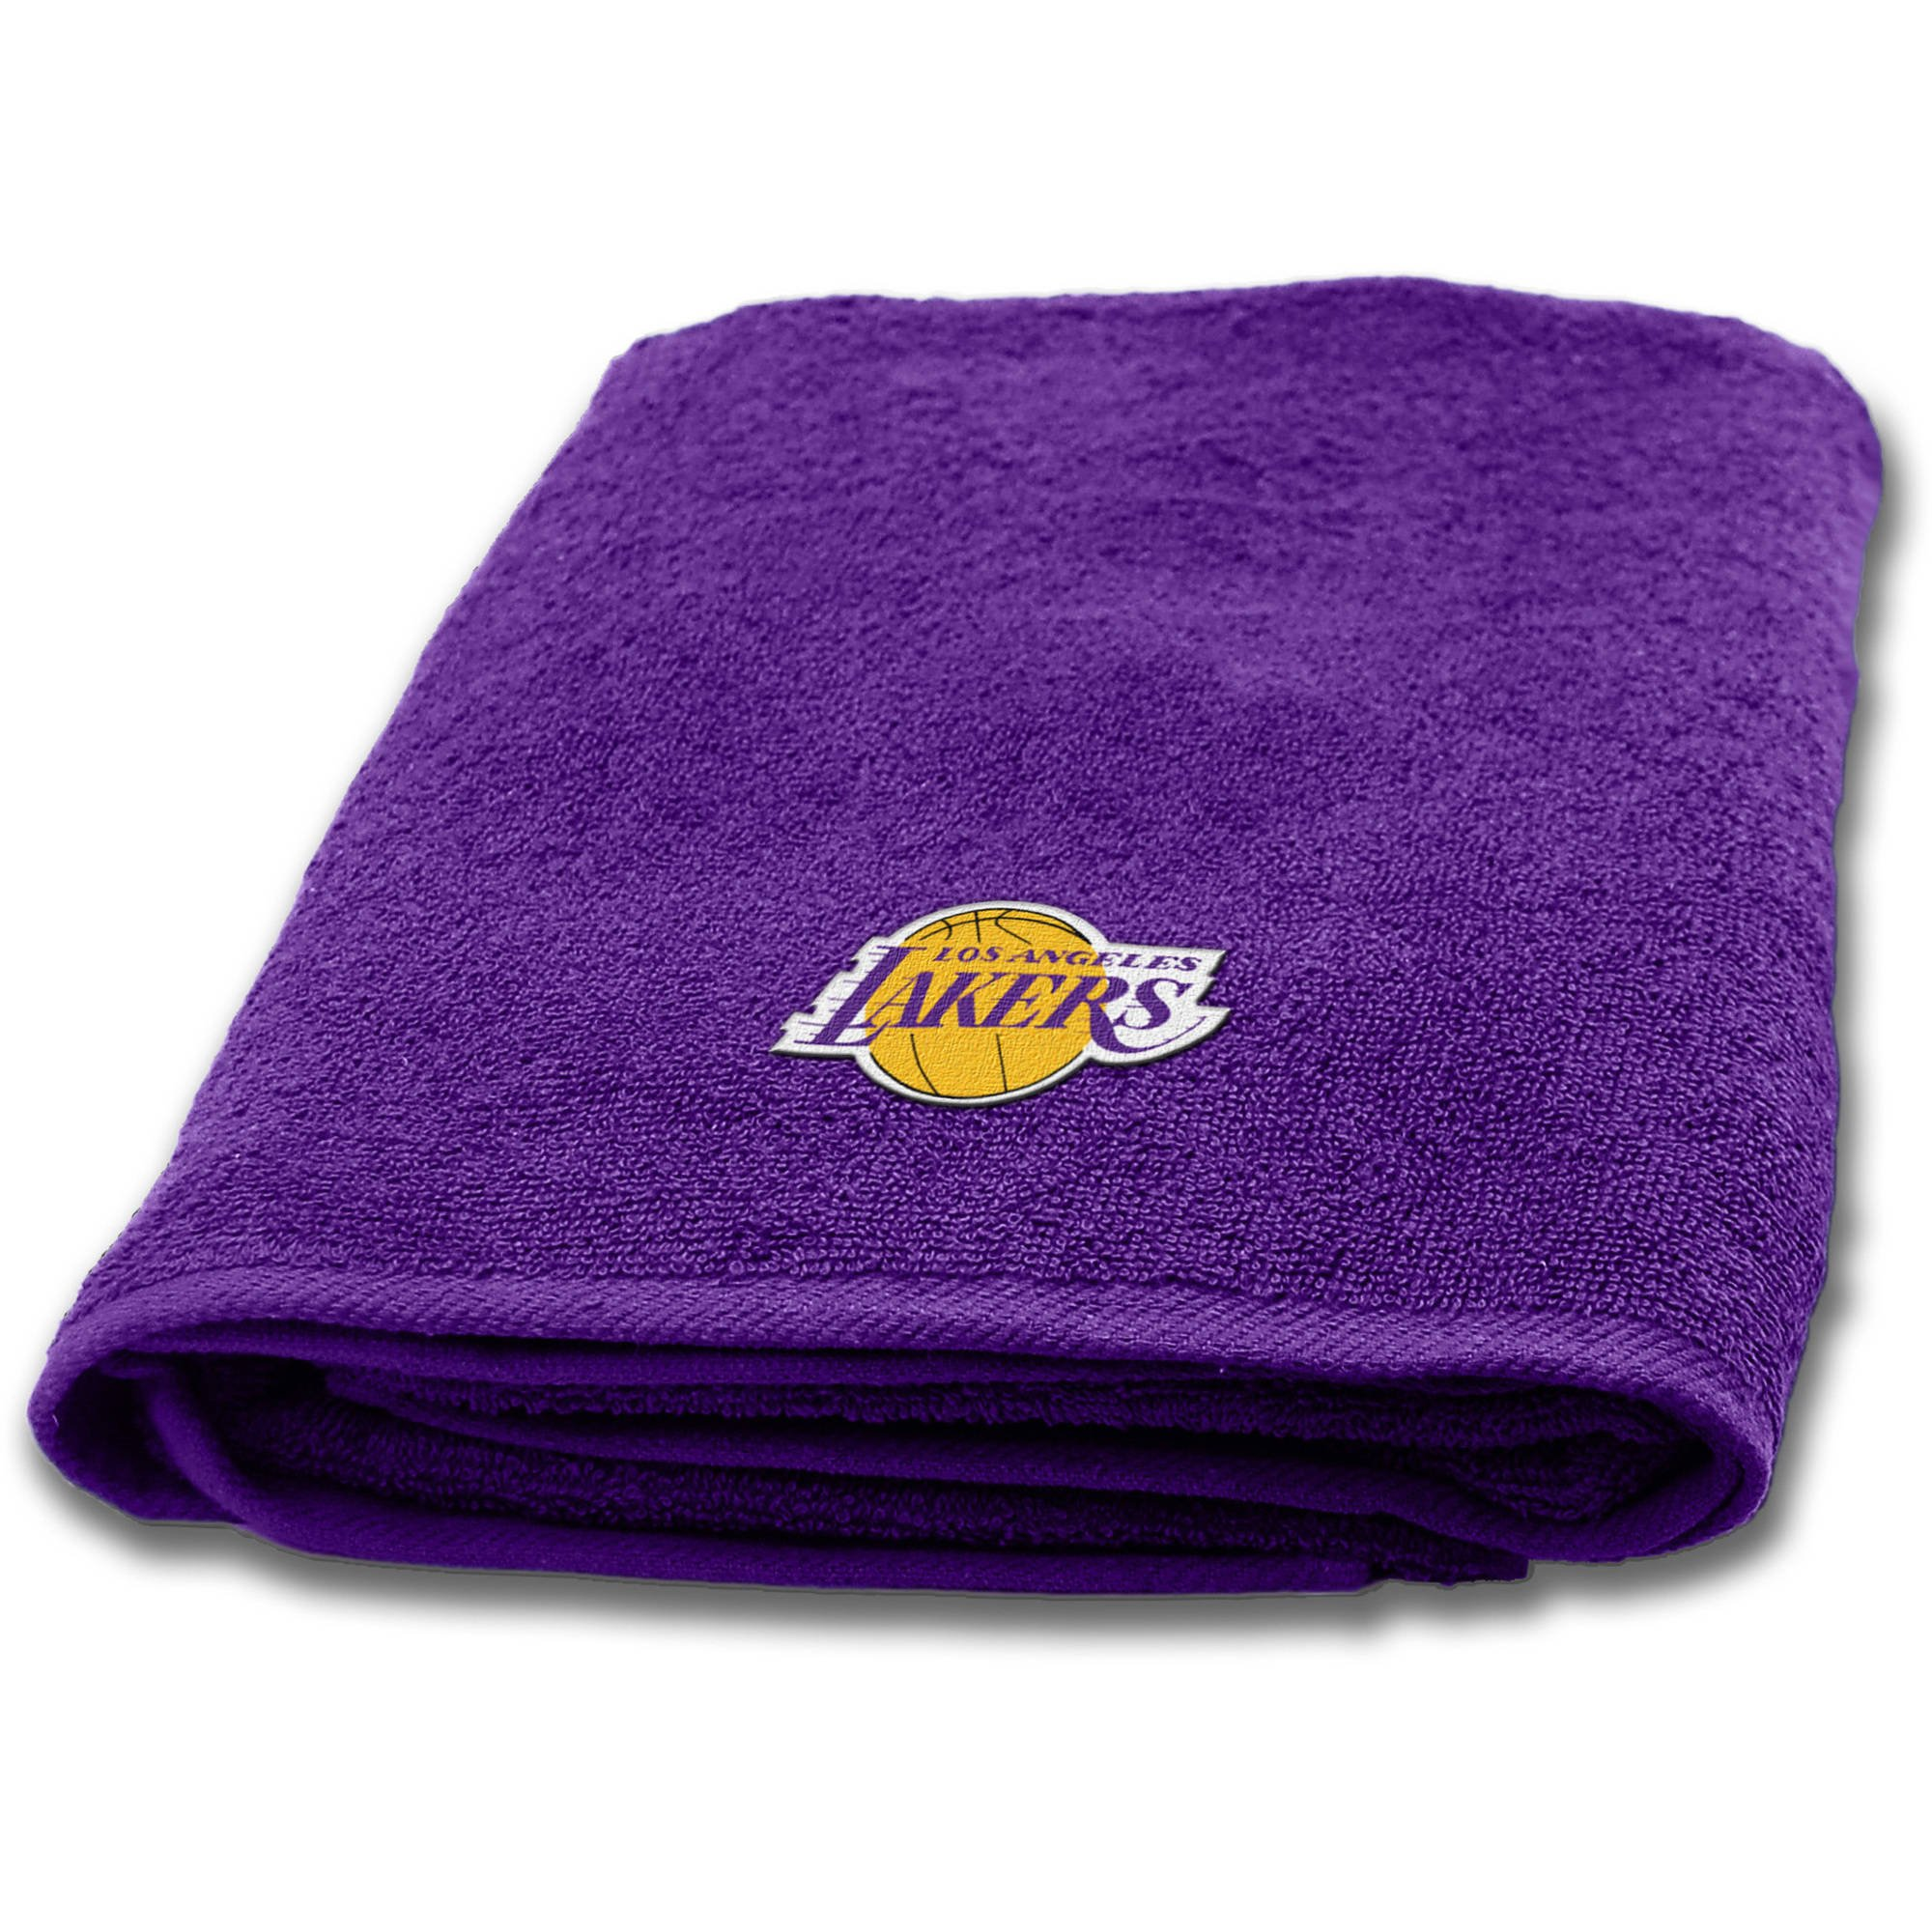 Northwest NBA Los Angeles Lakers 25''x50'' Applique Bath Towel, Set of 2#54189617